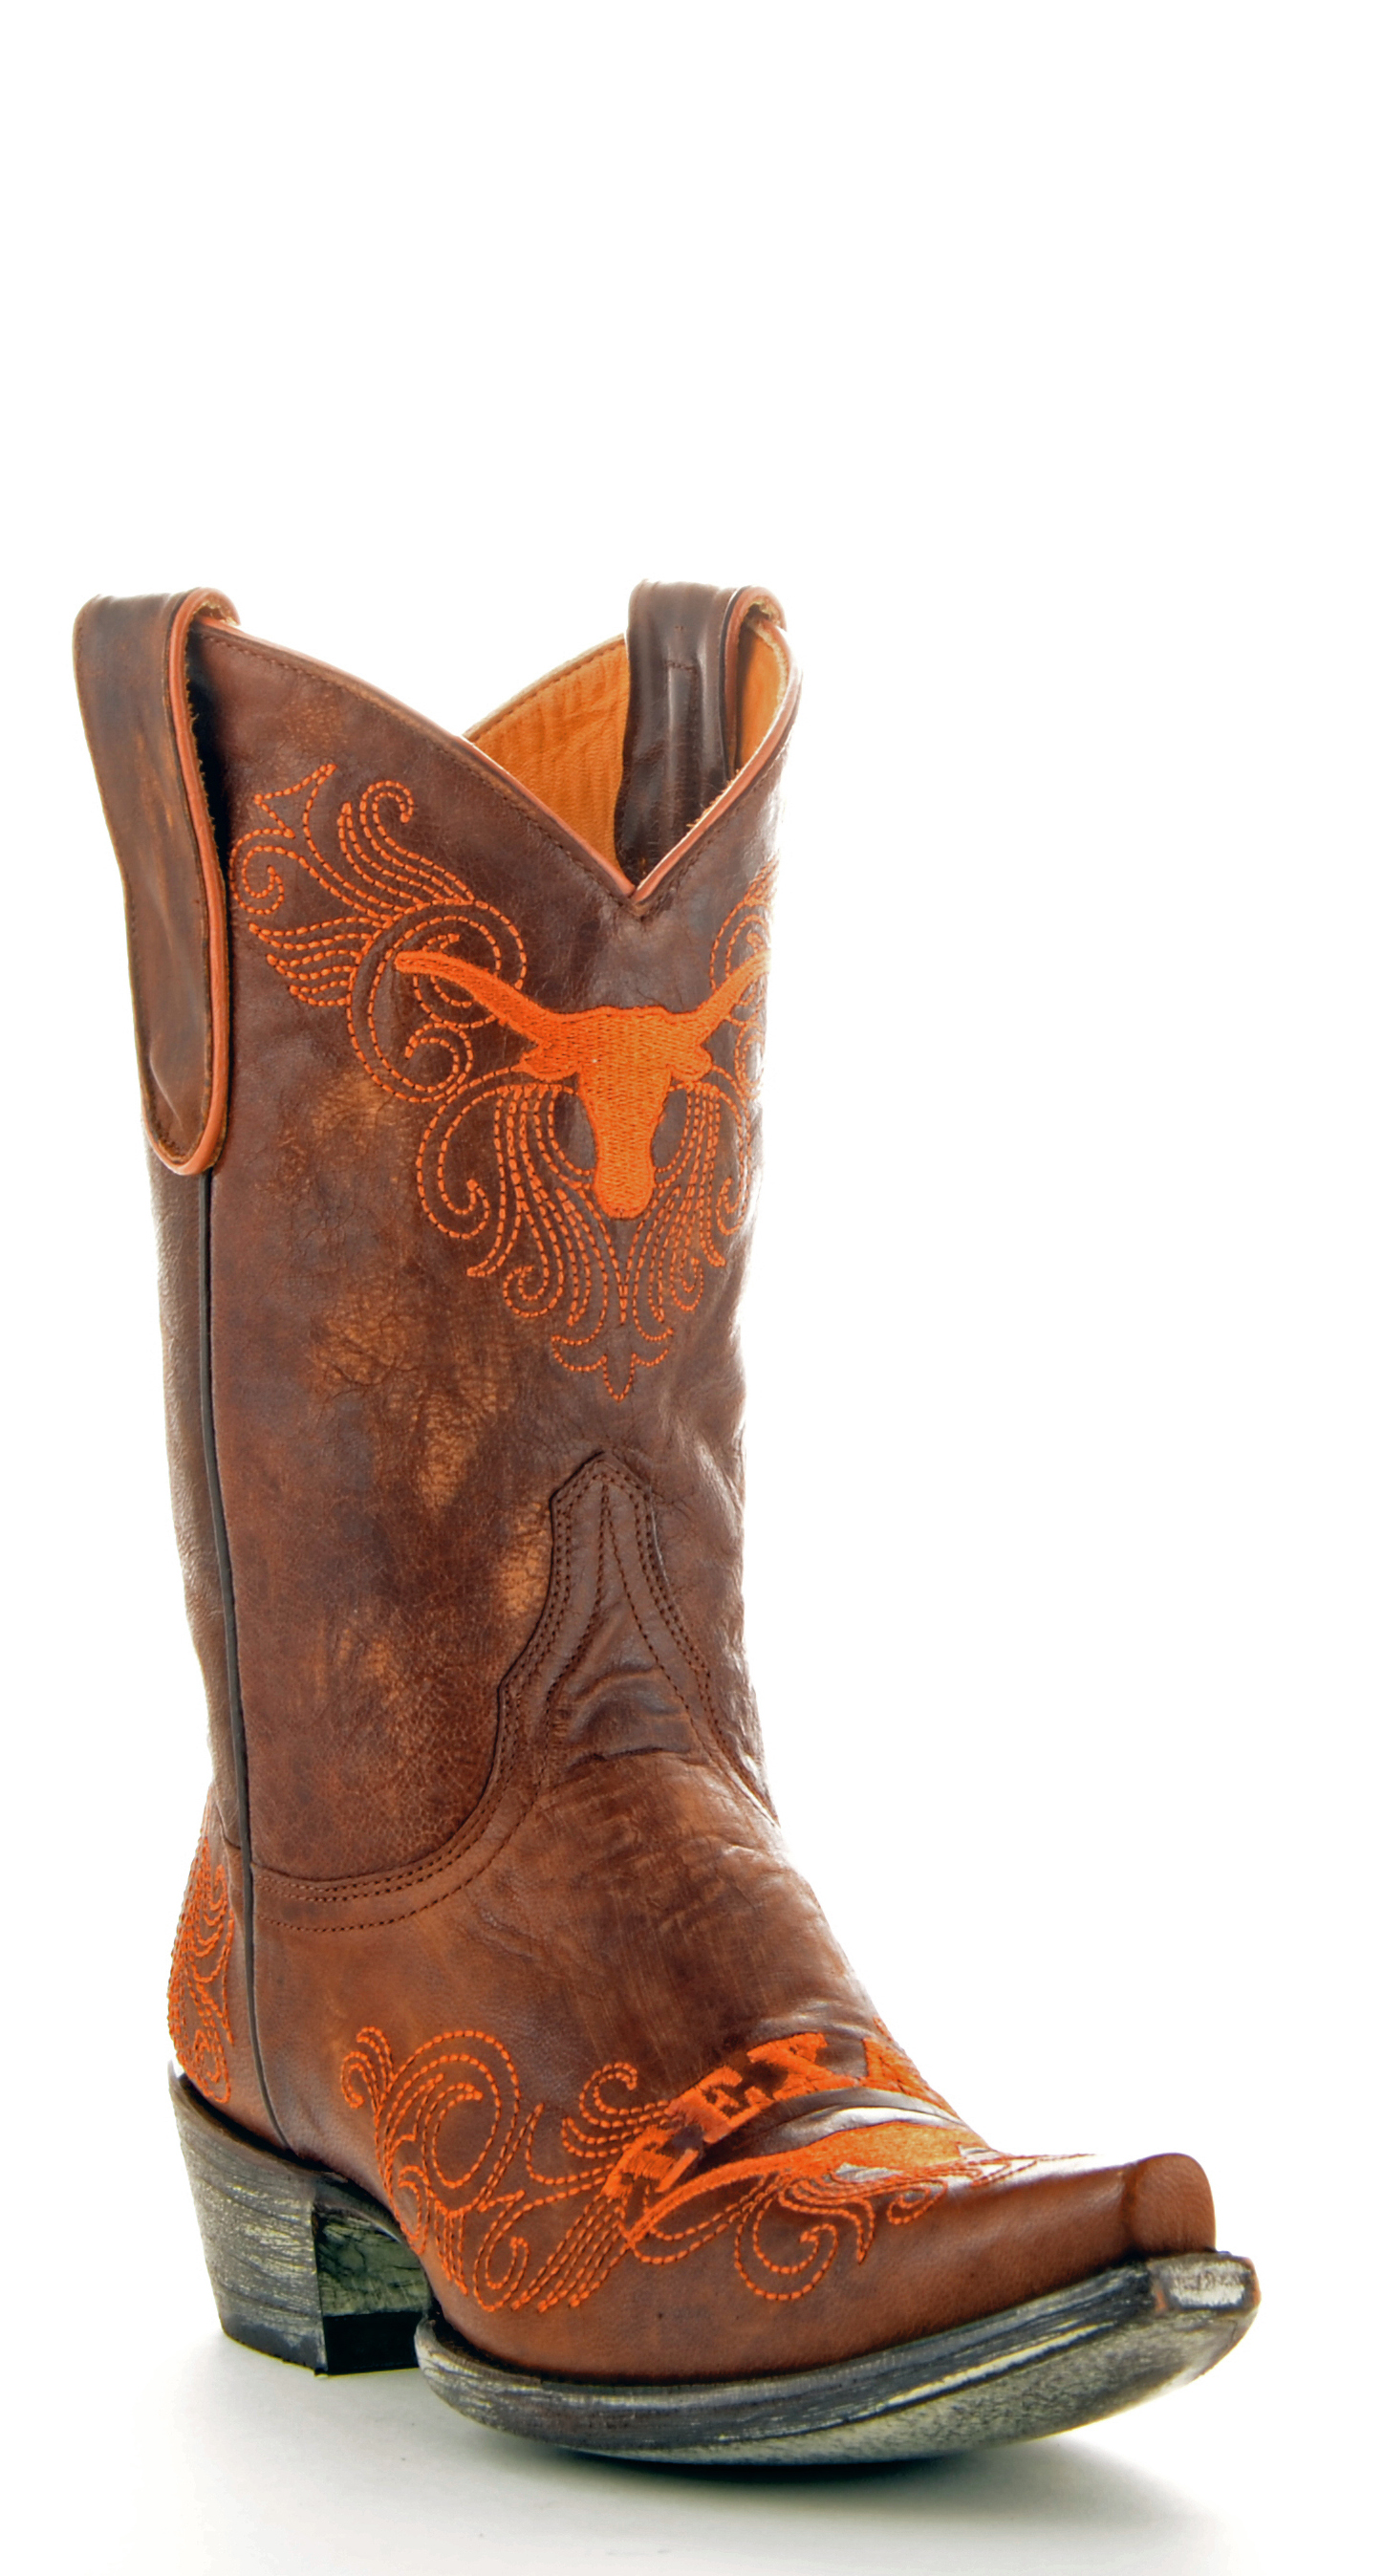 """Gameday Boots Women's 10"""" Short Leather University Of Texas Cowboy Boots by GameDay Boots"""